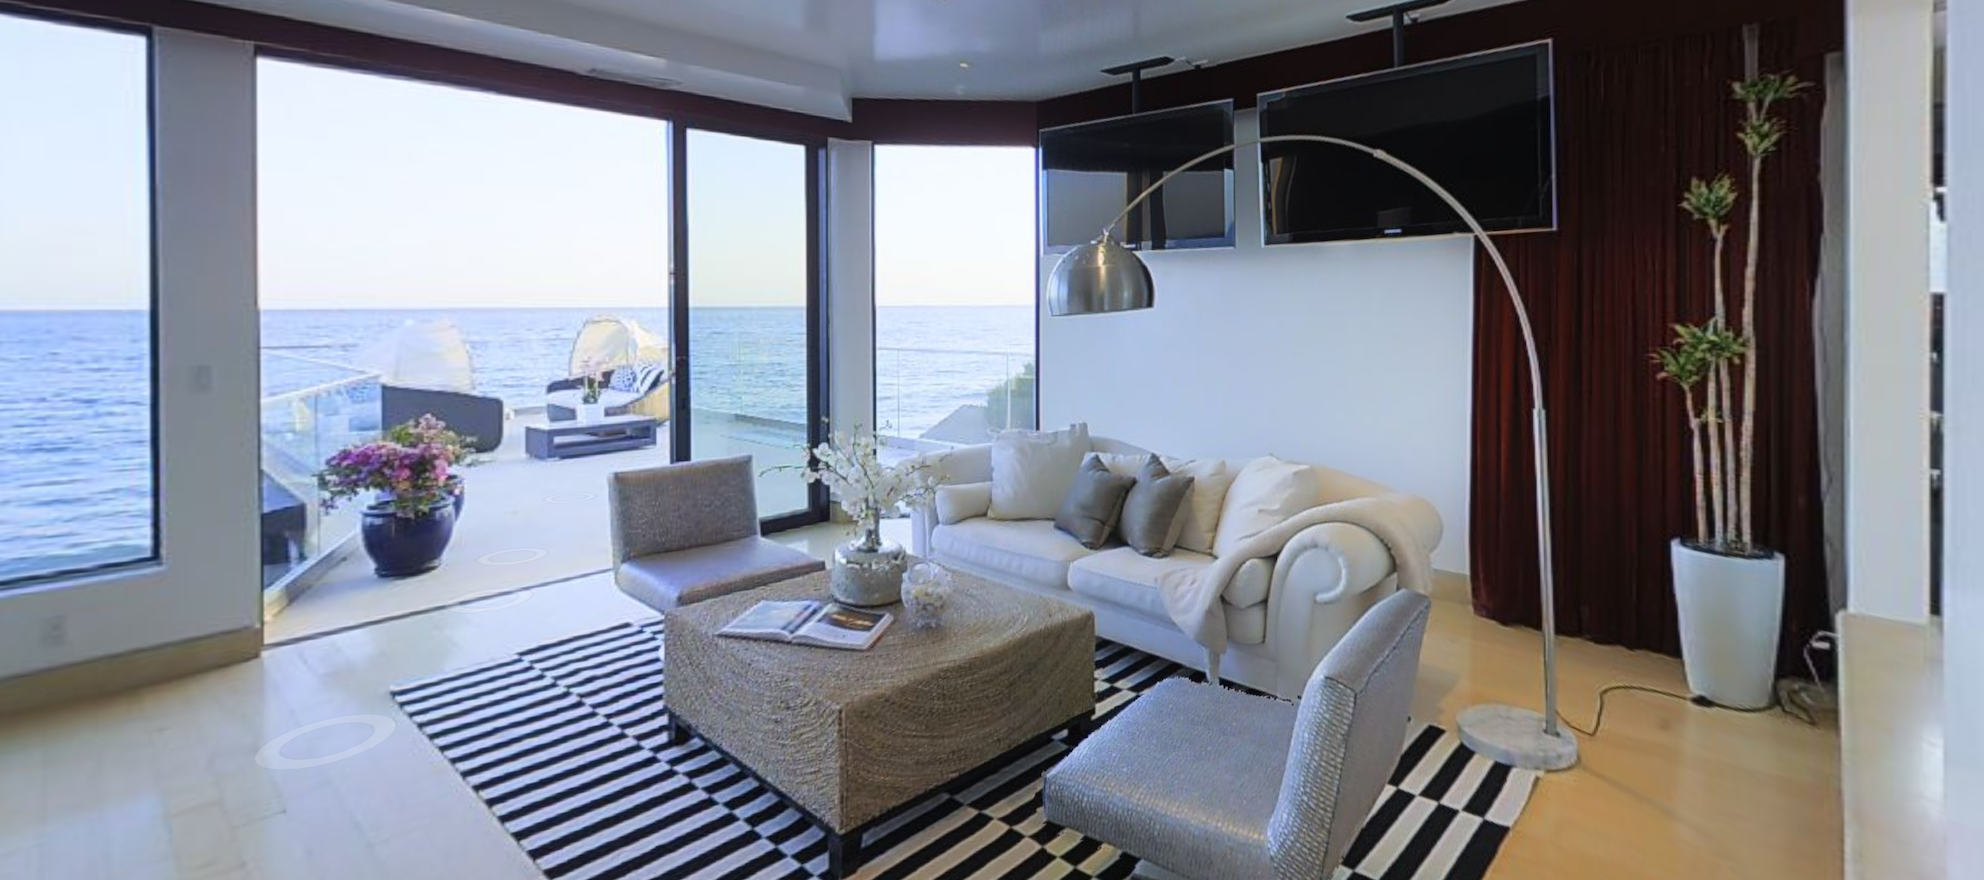 3-D home of the day: Elite beach community living